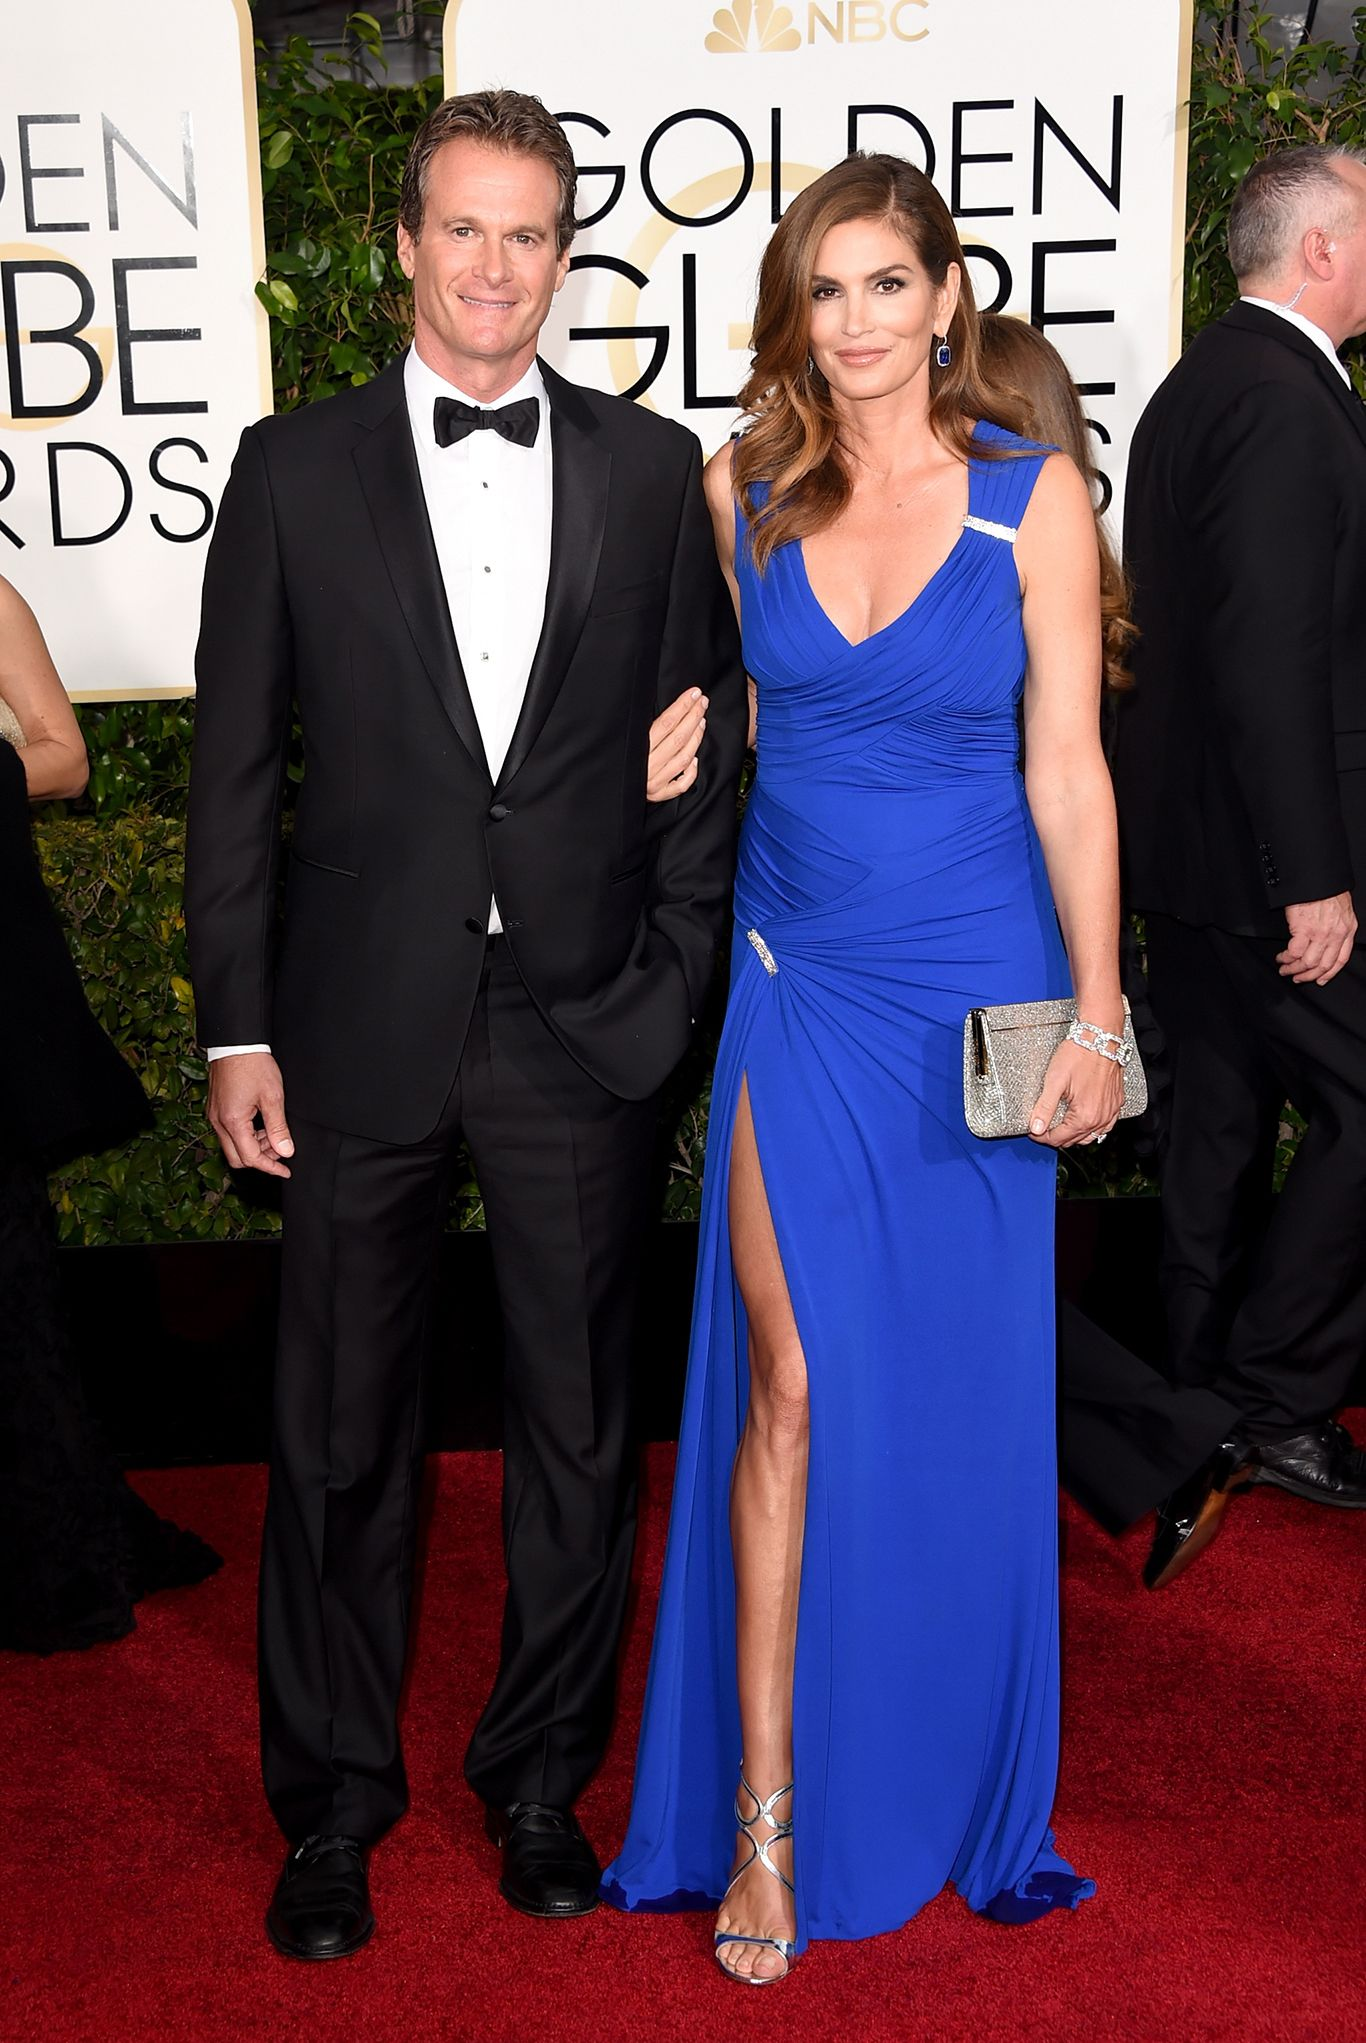 WOW! Cindy Crawford, in Versace @the 2015 Golden Globe Awards